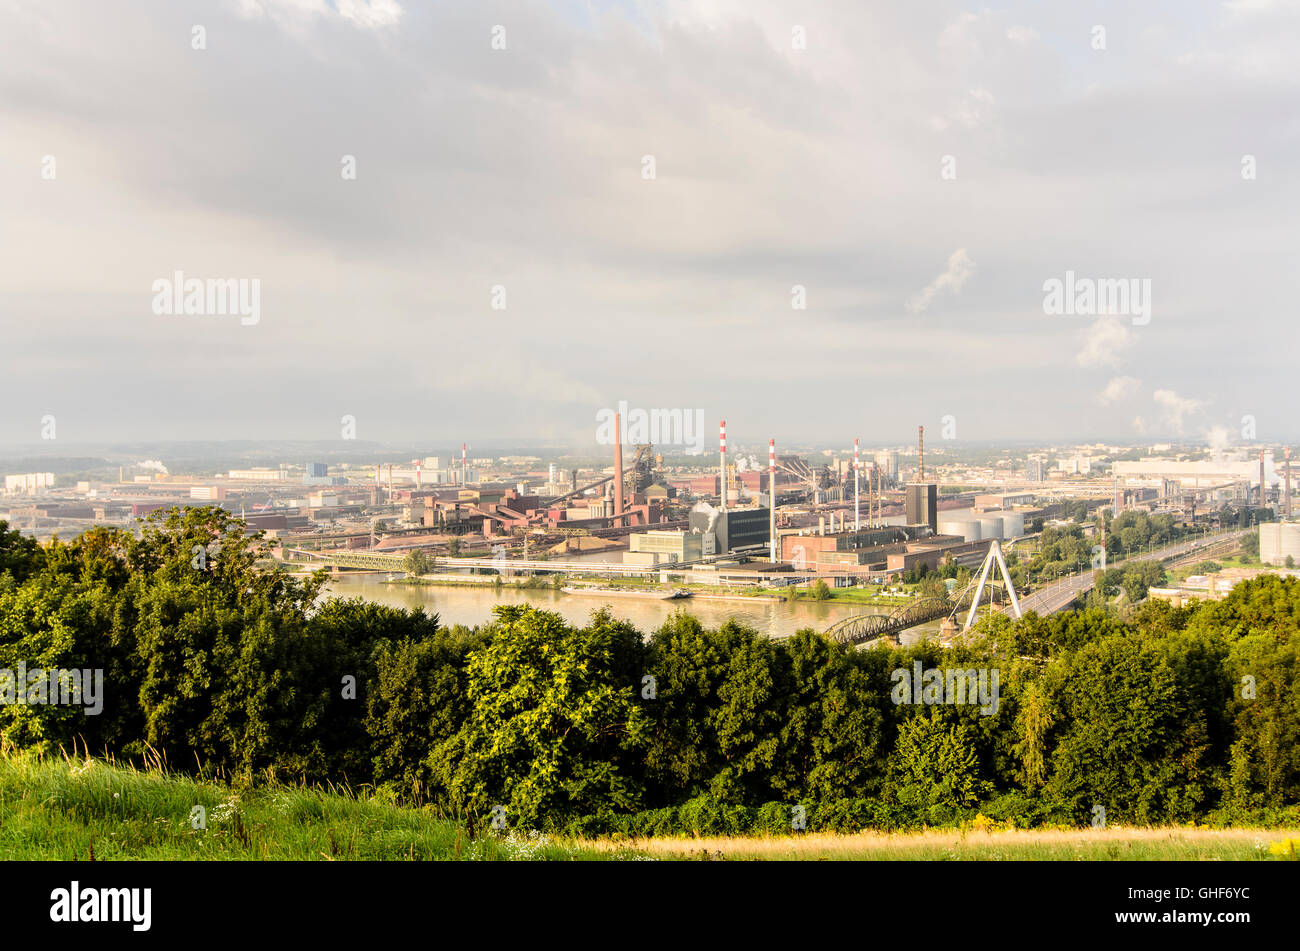 Linz: view from the slopes of Mount Pfenningberg on the premises of Voestalpine steelworks, Austria, Oberösterreich, - Stock Image